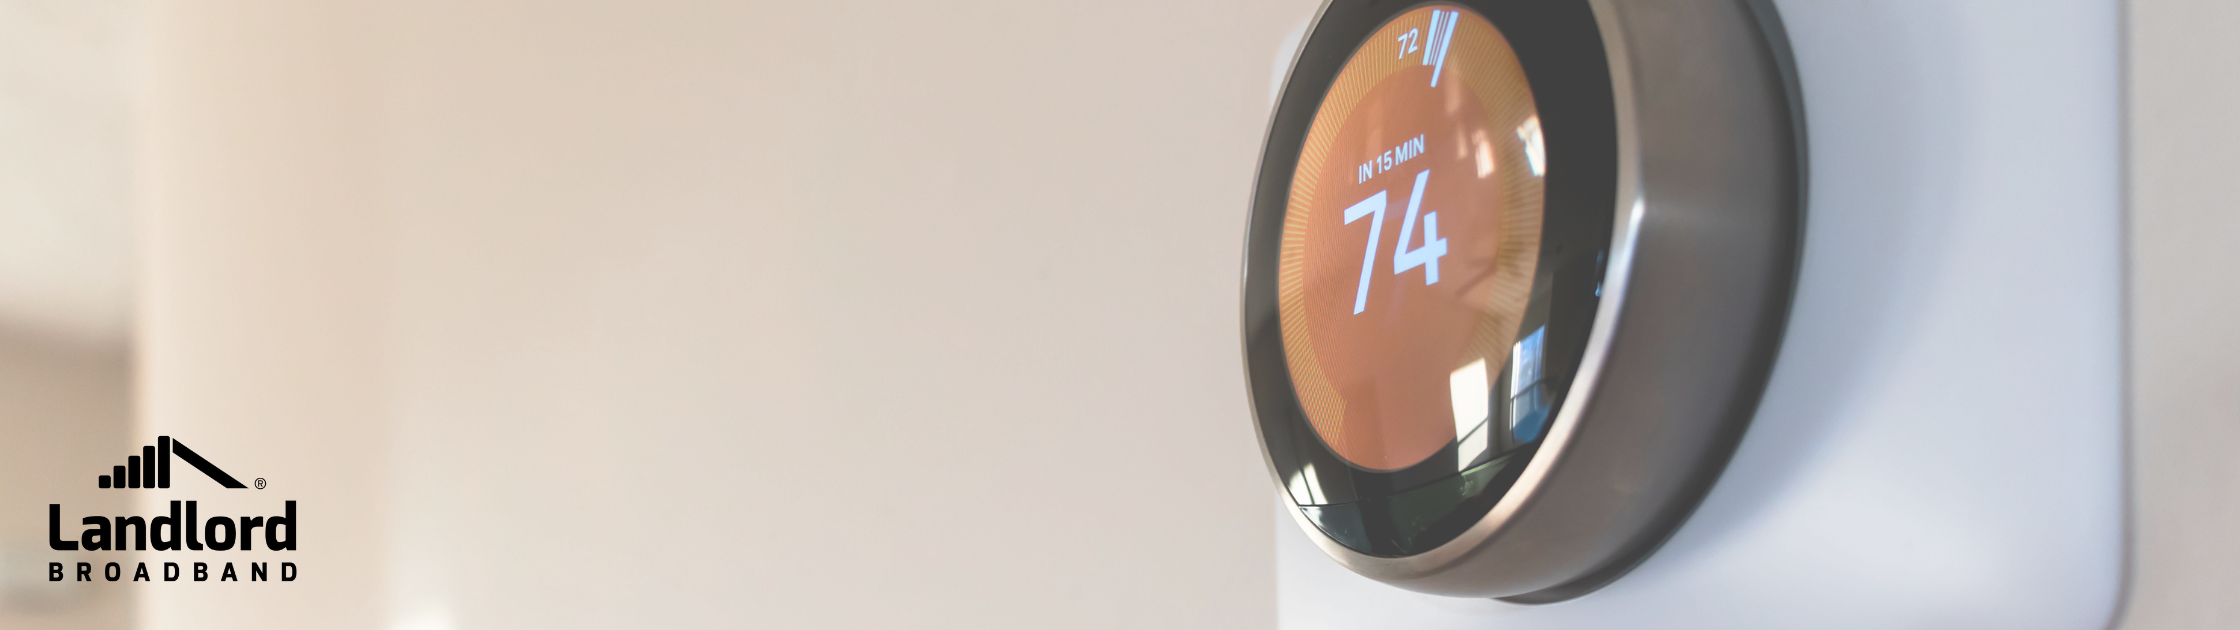 Control heating in your portfolio with our smart heating